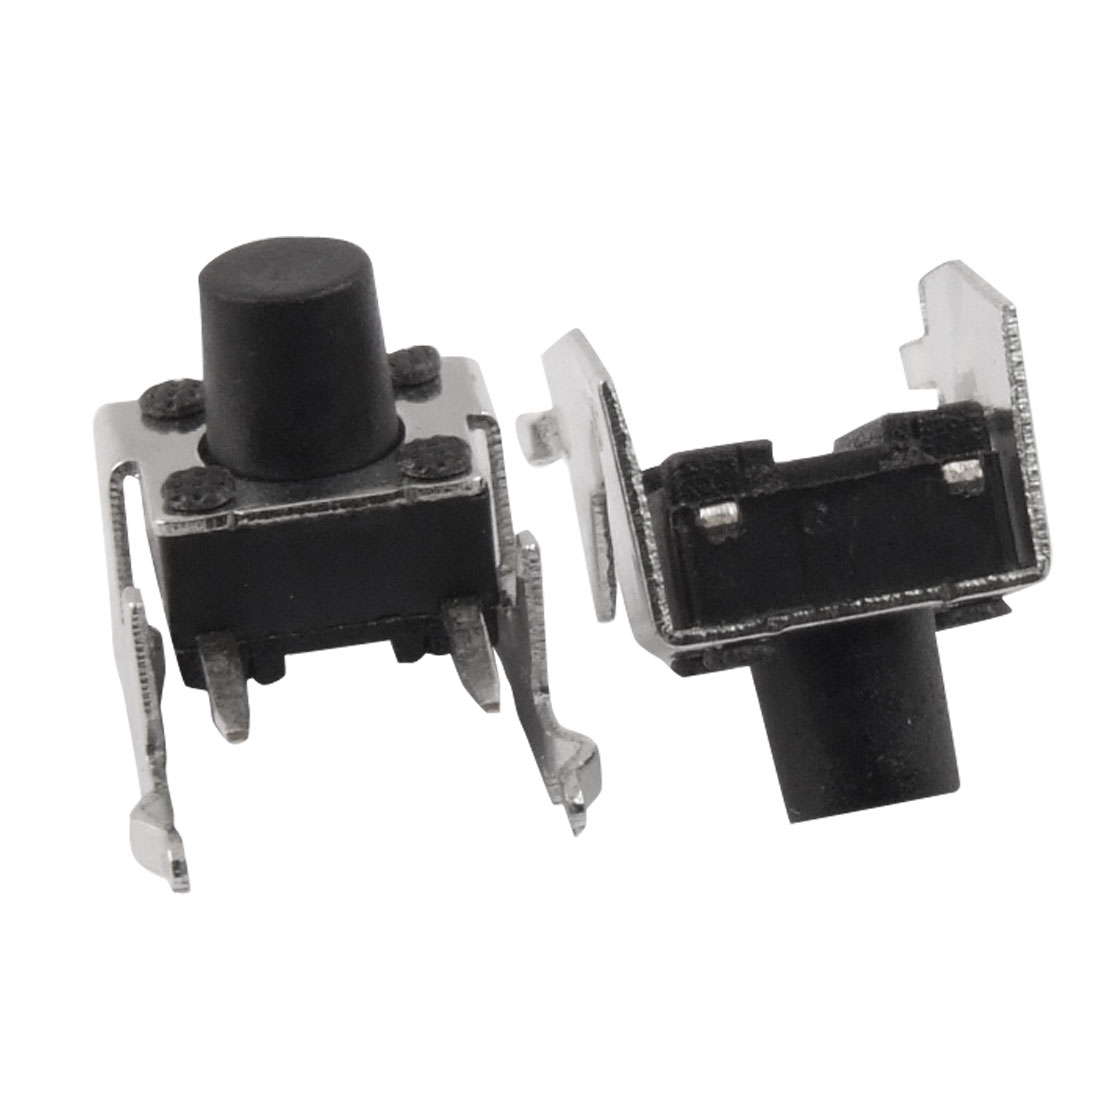 20 Pcs Momentary Right Angle Tactile Tact Push Button Switch 6 x 6mm x 7mm